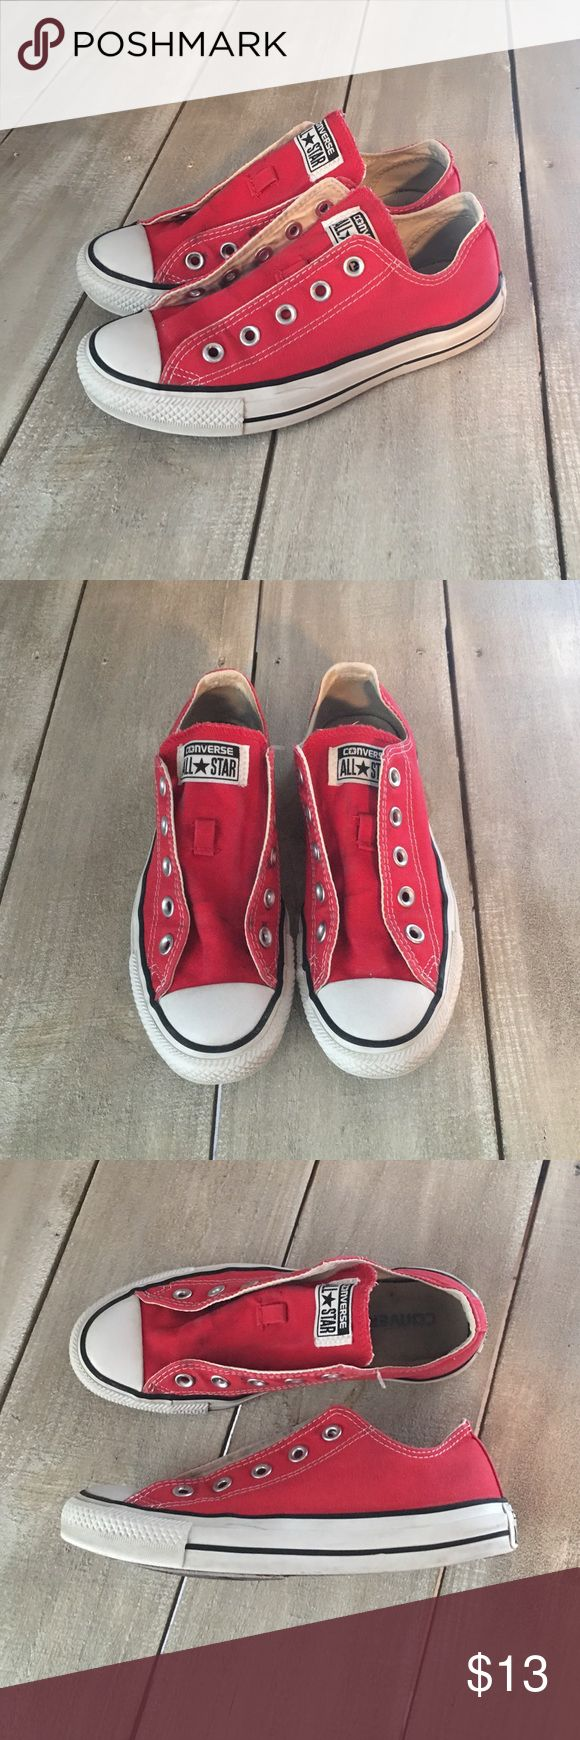 FLASH SALE $11 ⭐️ Converse All Star Sneakers ⭐️ Converse All Star shoes in a women's size 6. Red converse with no laces, they were dirty so I threw them out, lol. I washed the shoes, there is some wear on them but they're in good condition. Just throw on some new laces and you're good to go. Converse Shoes